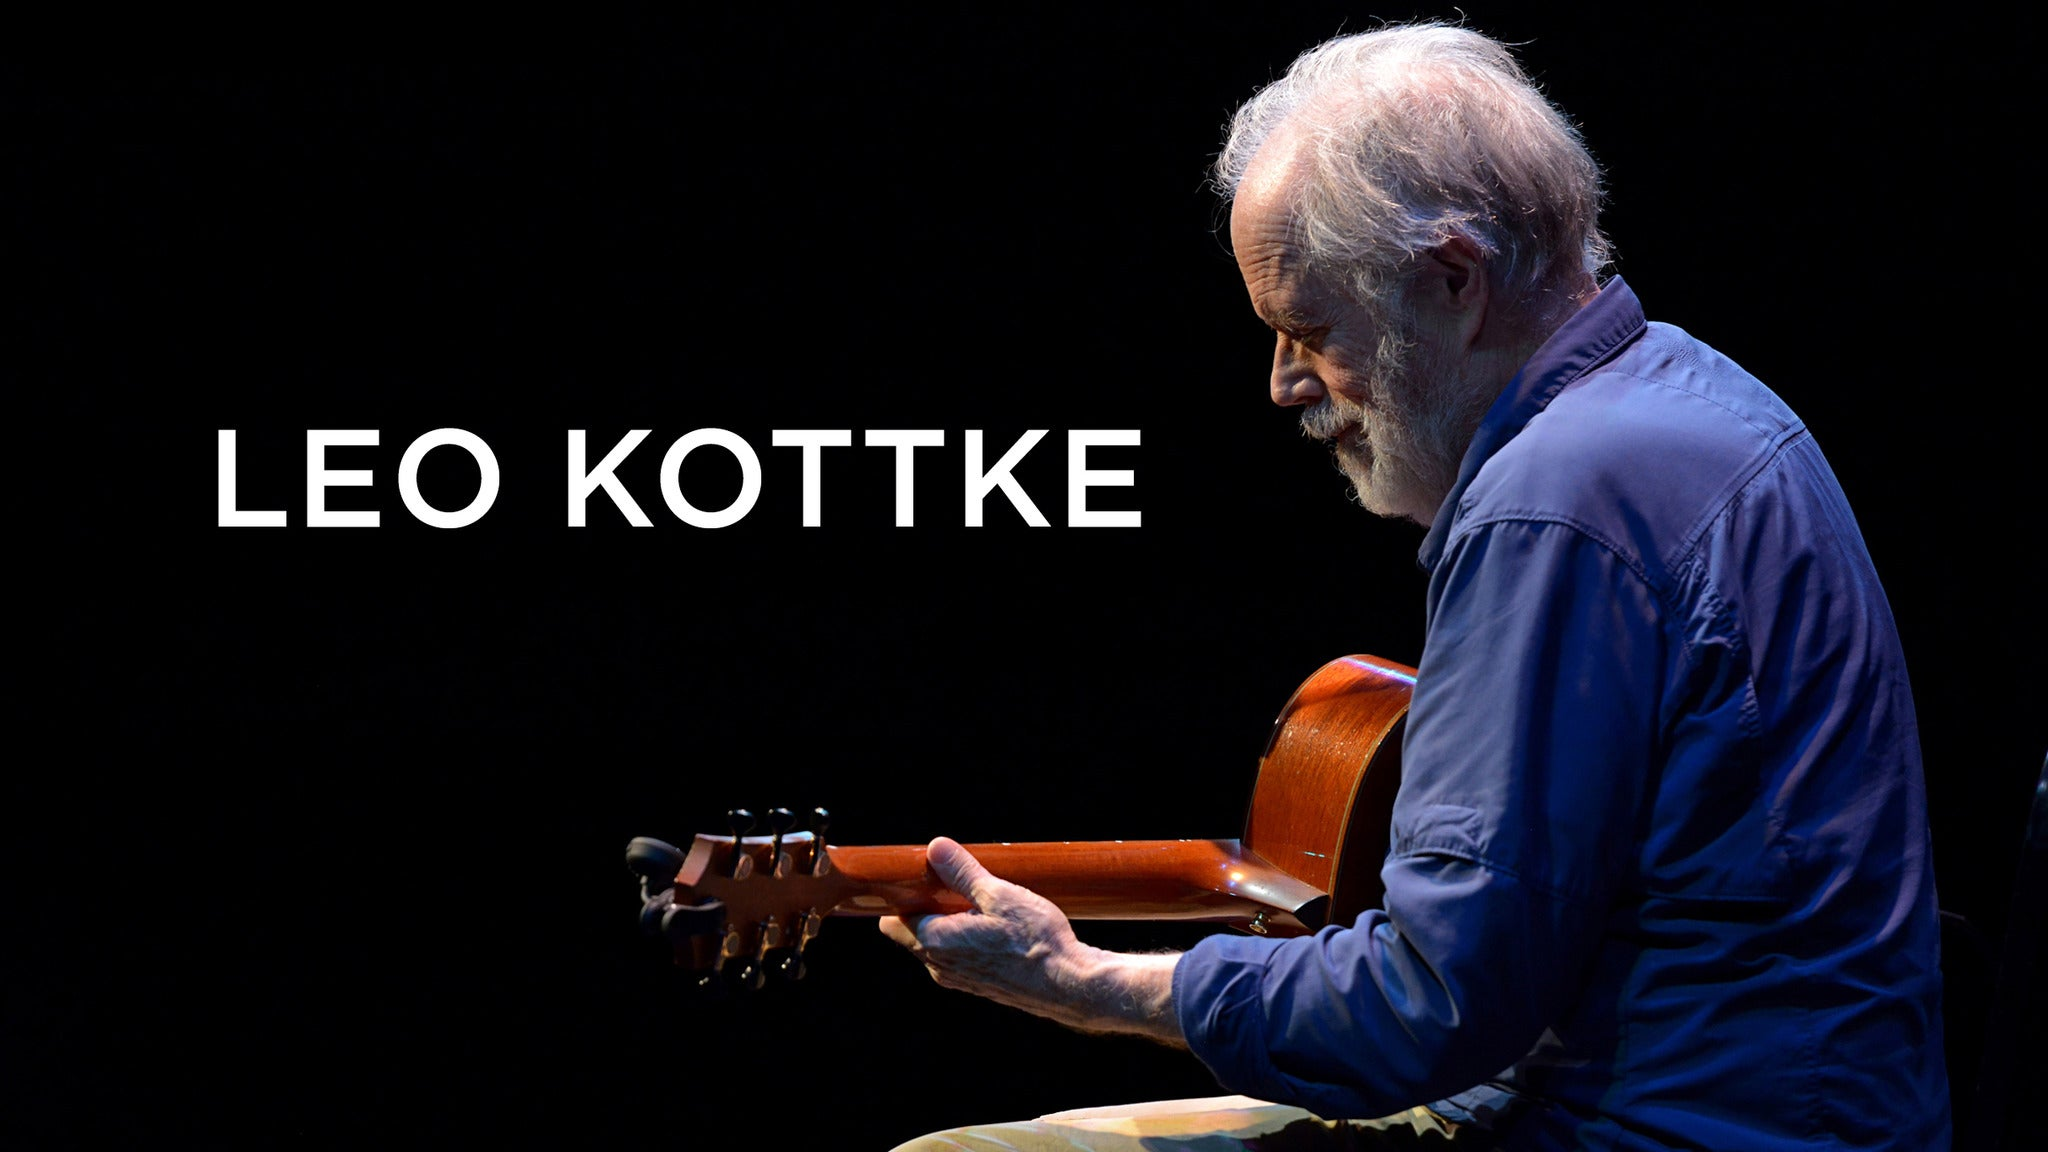 Leo Kottke at Orpheum Theater Sioux Falls